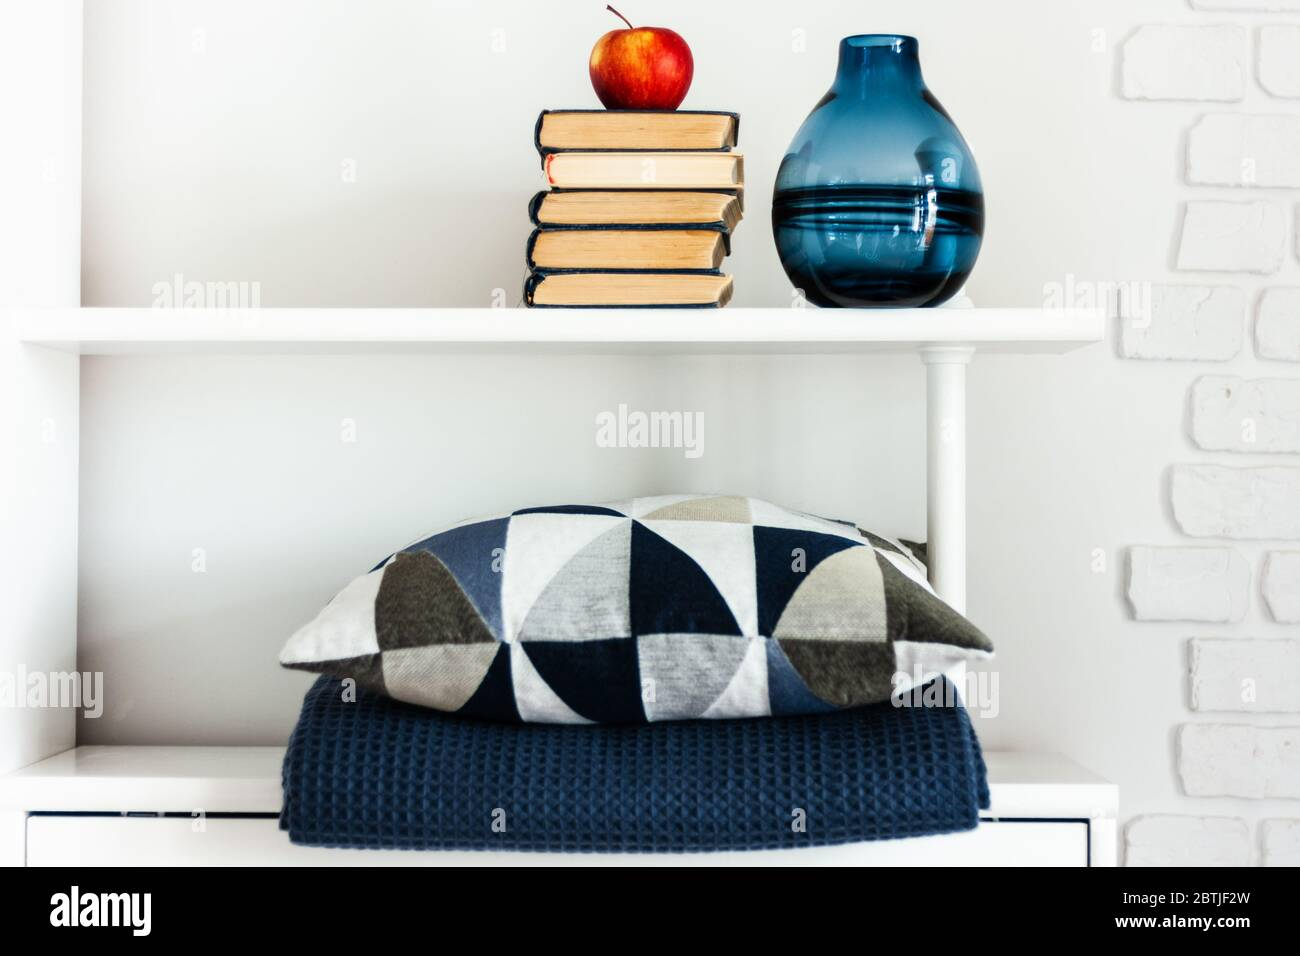 Cozy Home Interior Decor Pillow Plaid Blue Vase Stack Of Books Red Apple On A White Shelf In The Room The Quarantine Concept Of Stay Home Dista Stock Photo Alamy